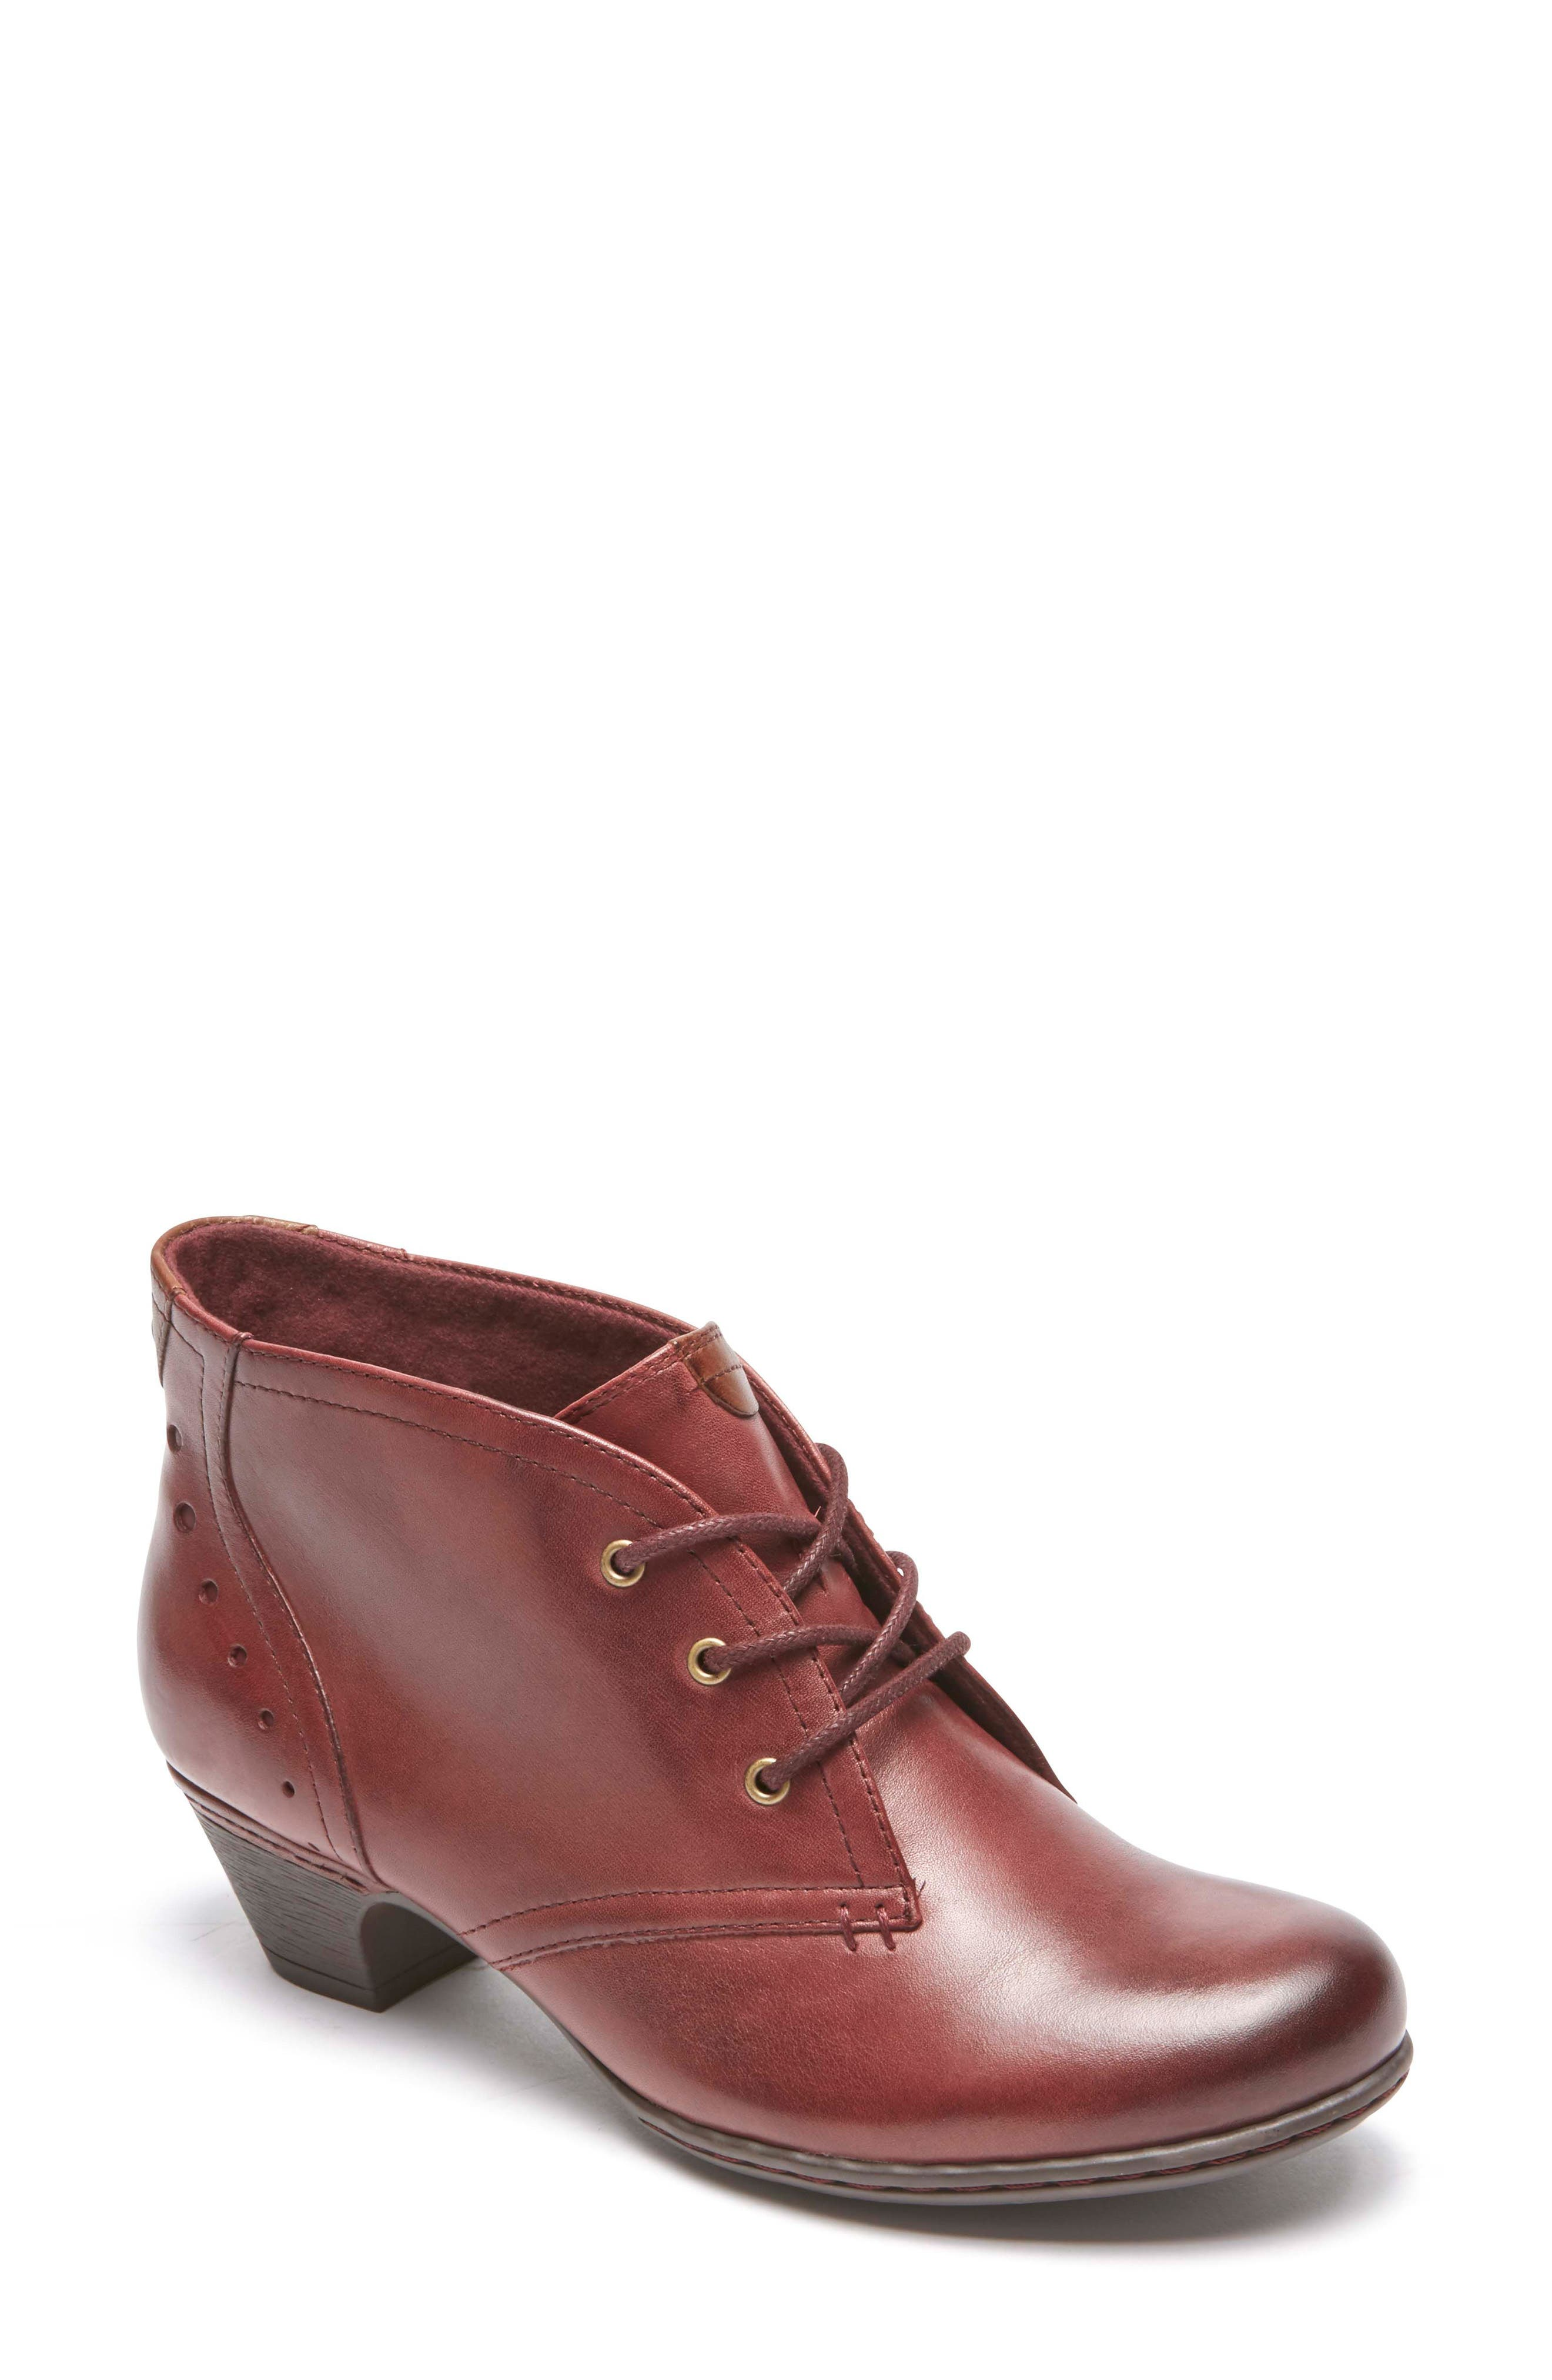 Aria Leather Boot,                         Main,                         color, MERLOT LEATHER